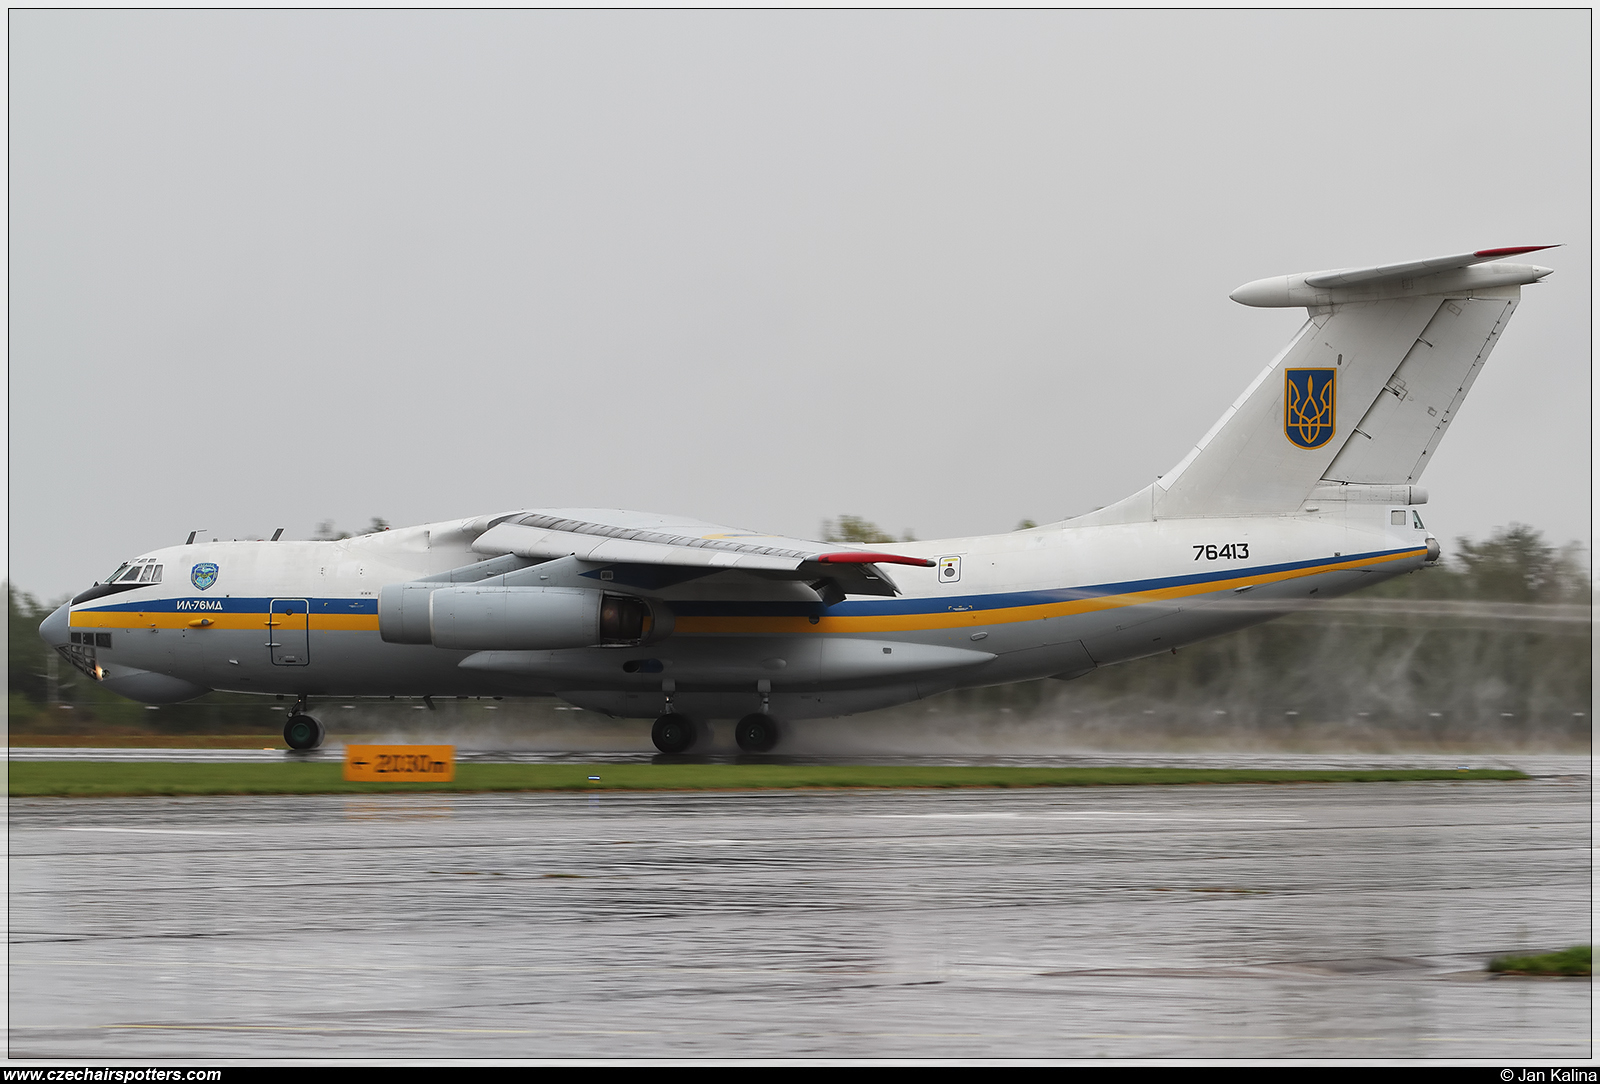 Ukraine - Air Force – Ilyushin  Il-76MD 76413